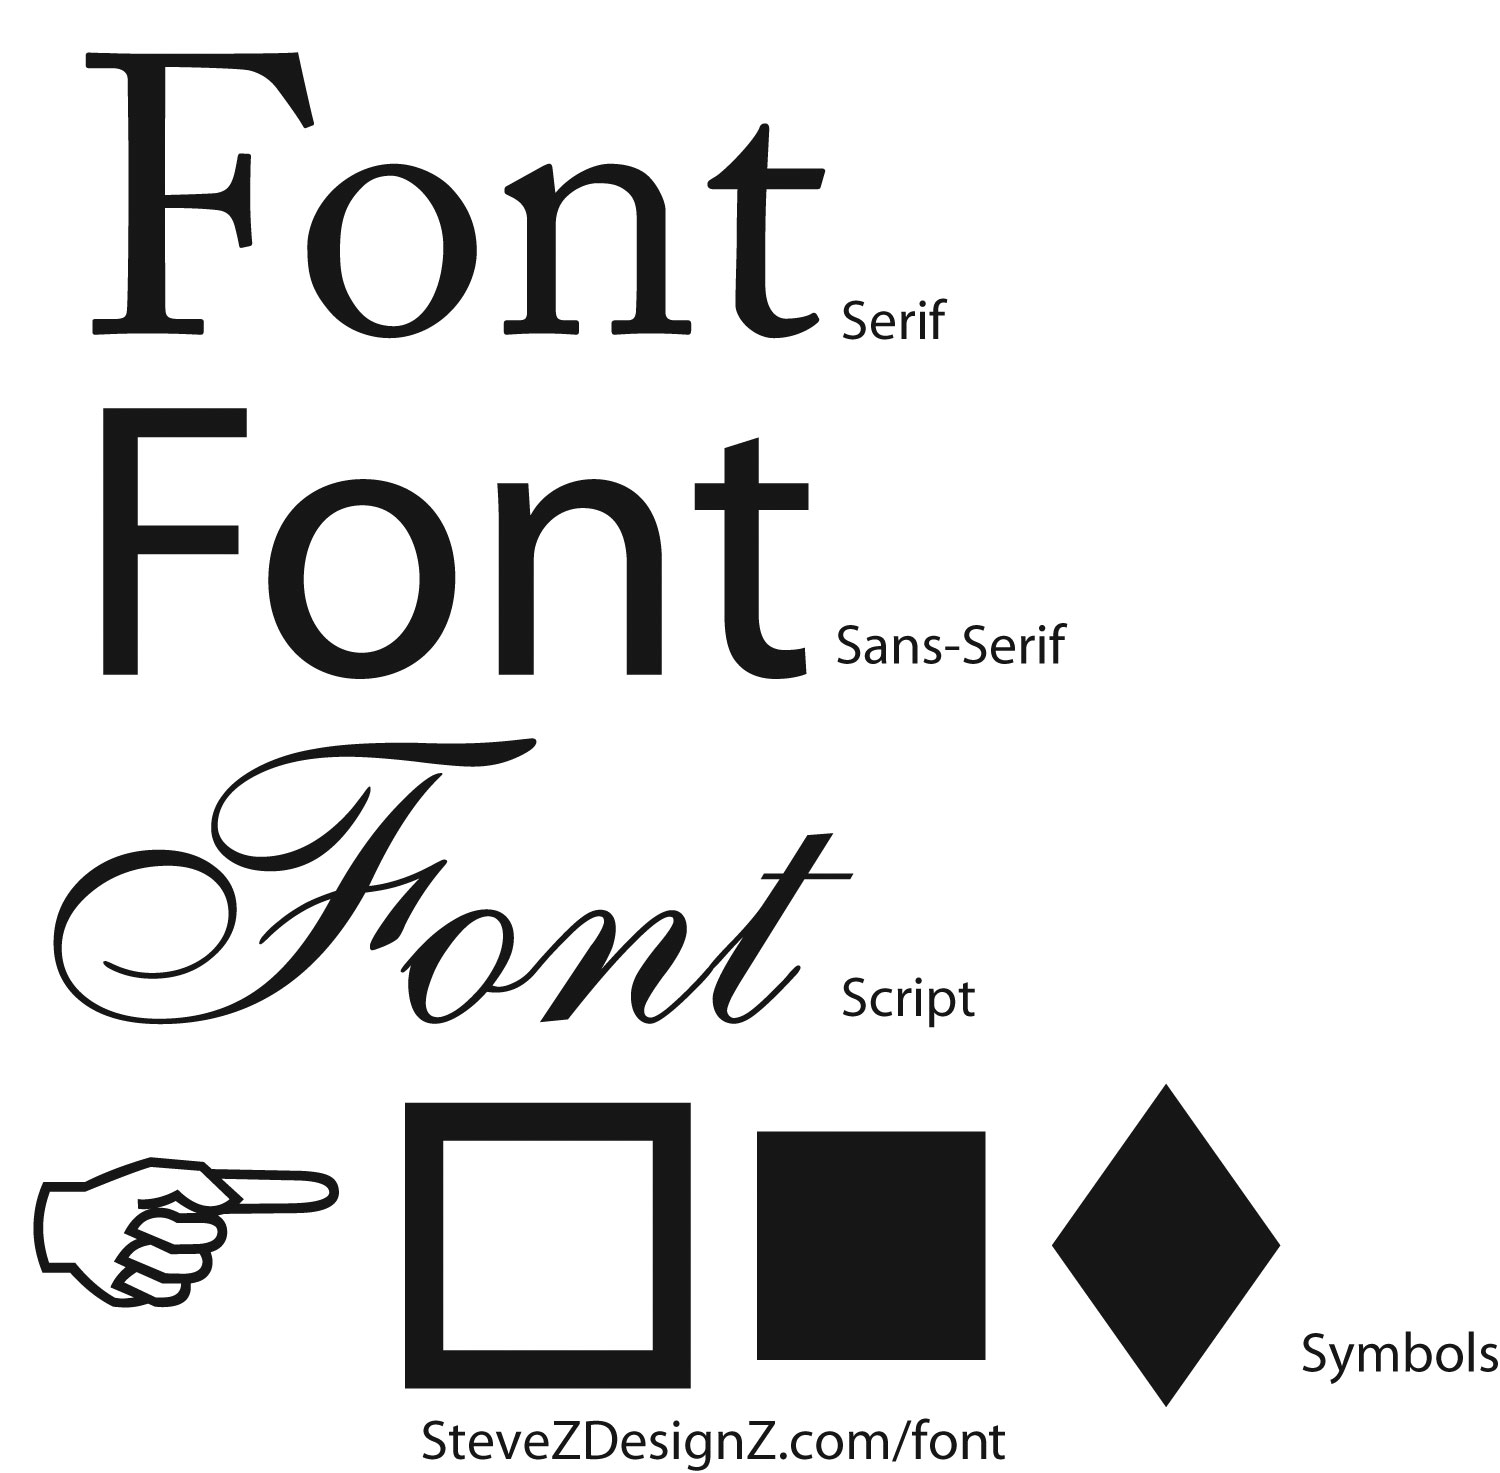 Font - It is what makes the words on printed and screened designs. #Font